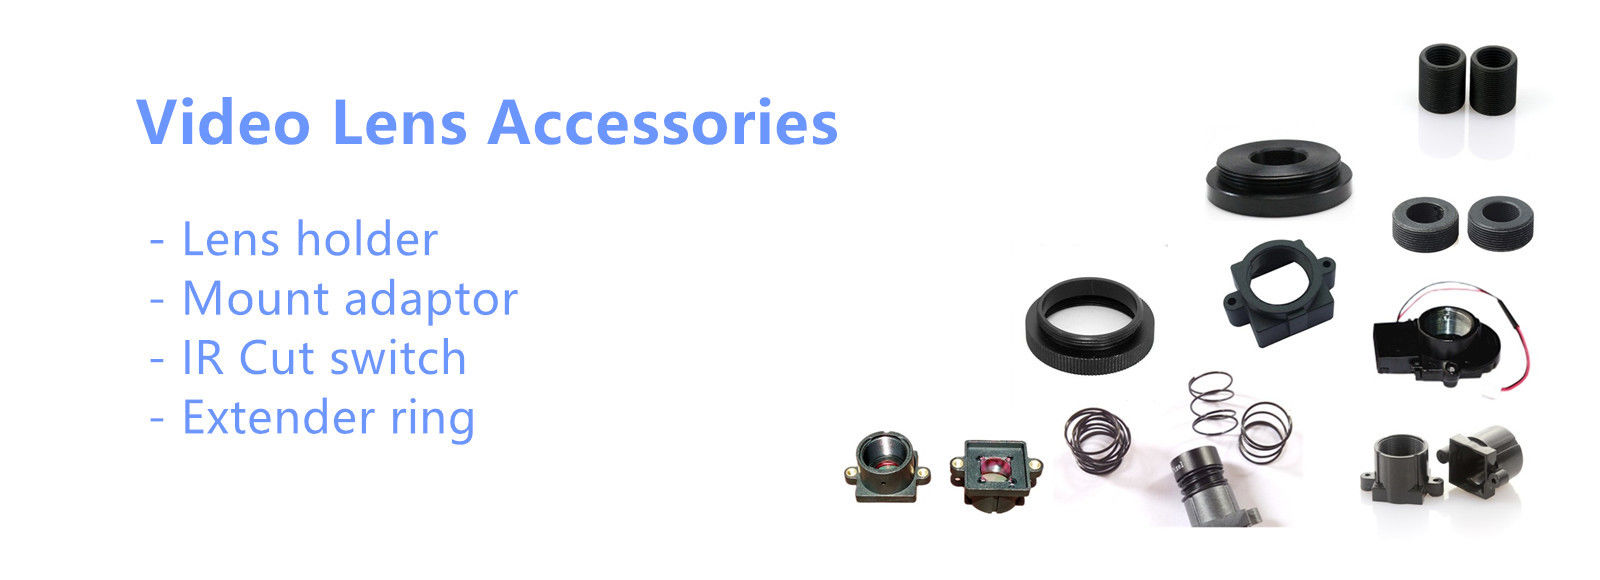 China best Video Lens Accessories on sales